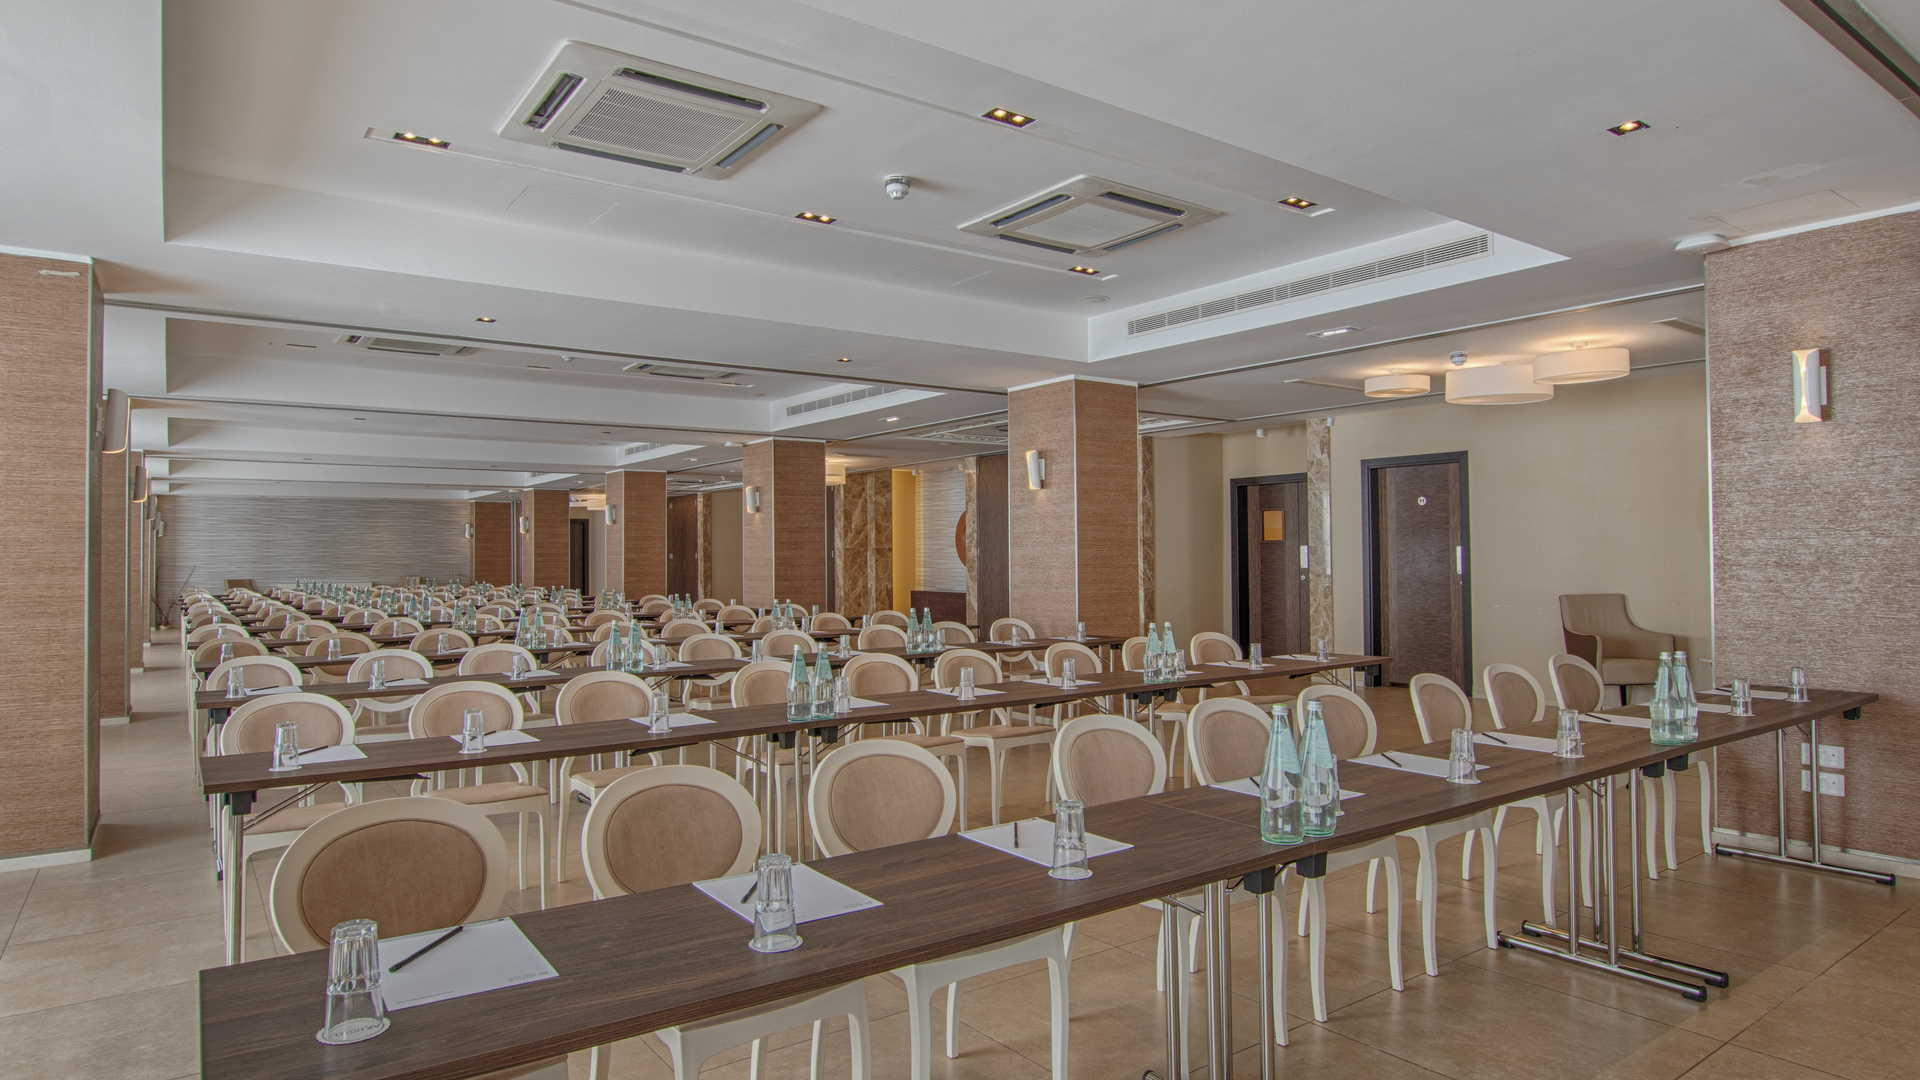 Luzzu Conferences & Meetings - Conference Hall Classroom Style